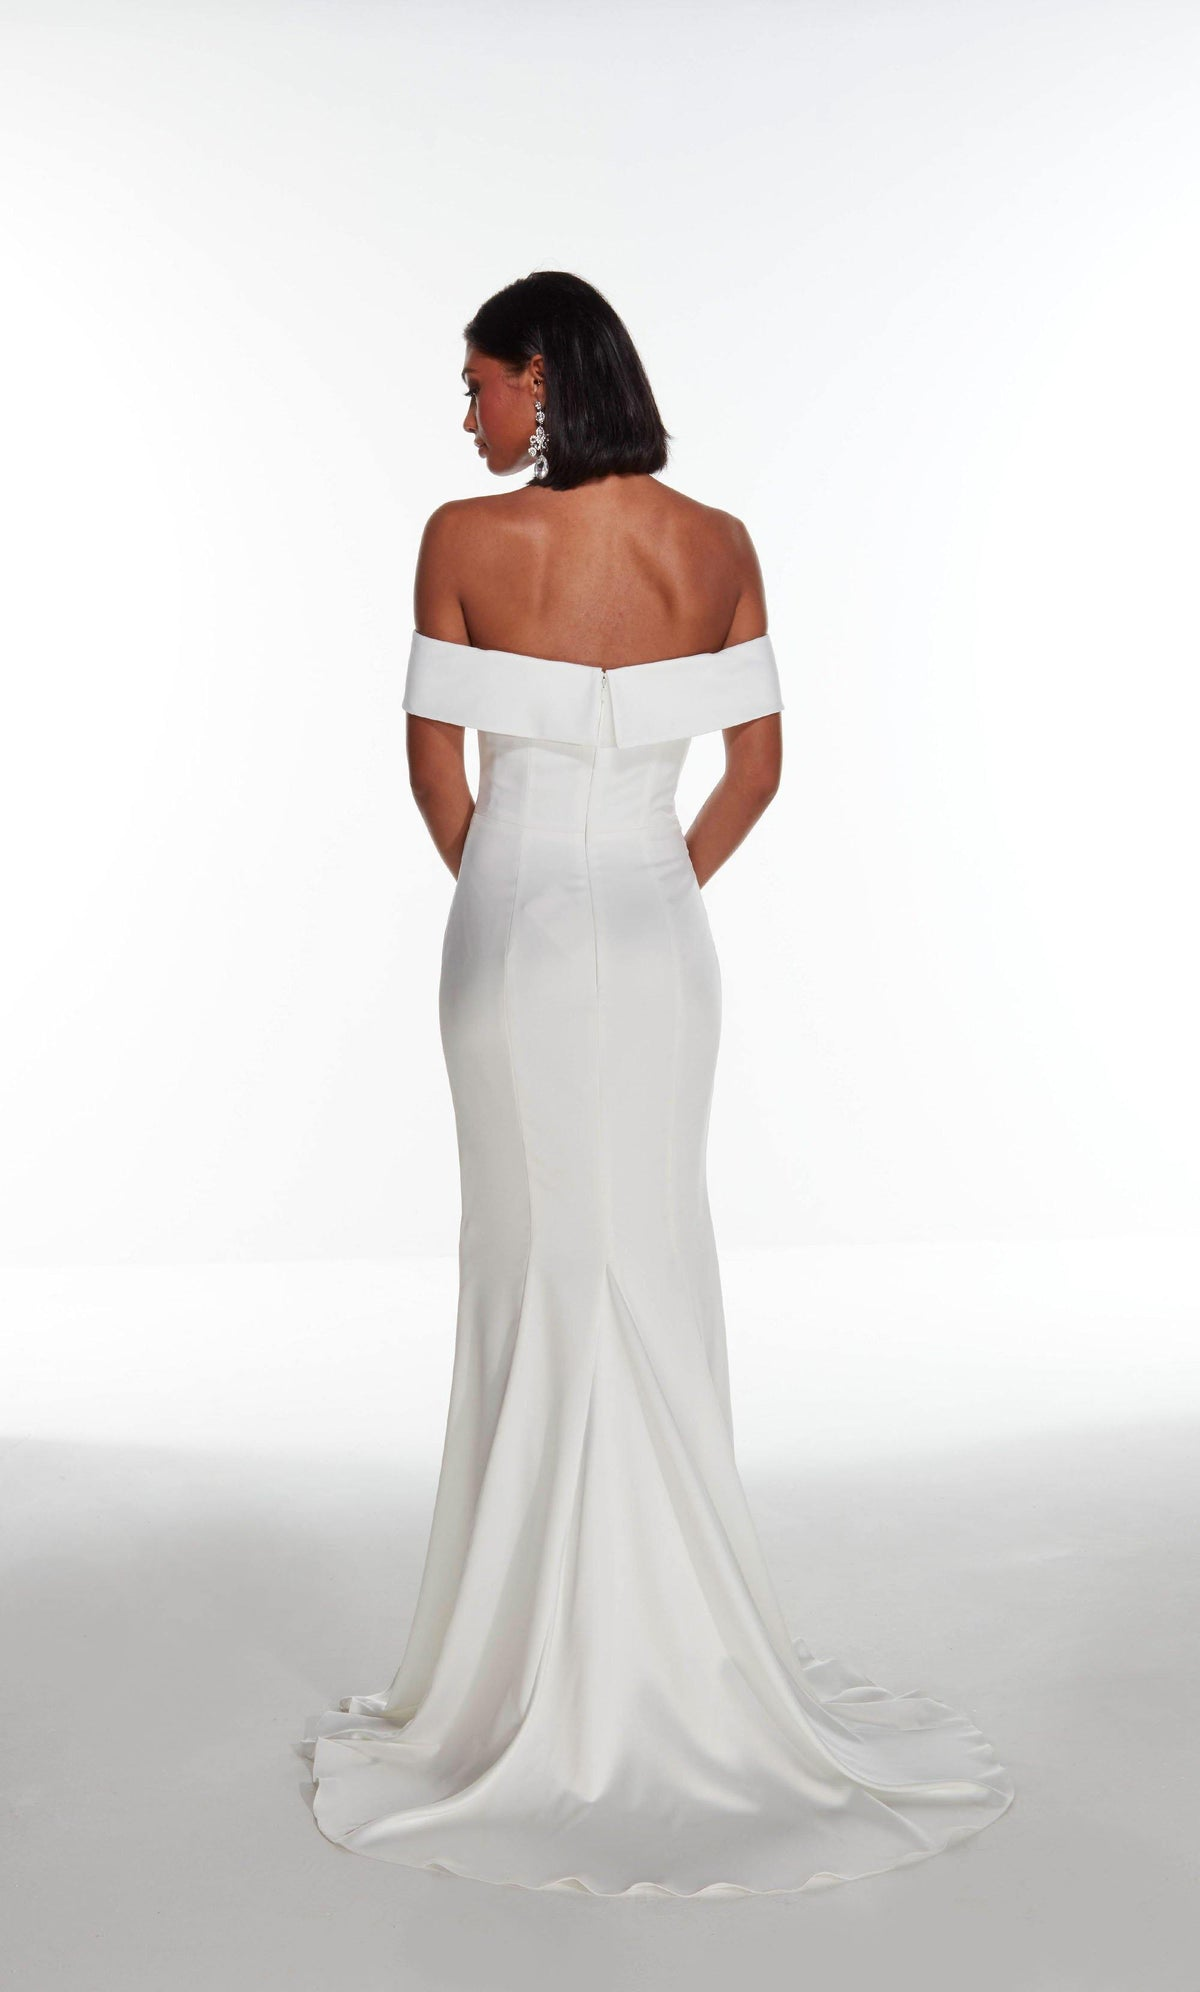 Diamond White off the shoulder satin wedding dress with an enclosed back, pictured here without the detachable overskirt